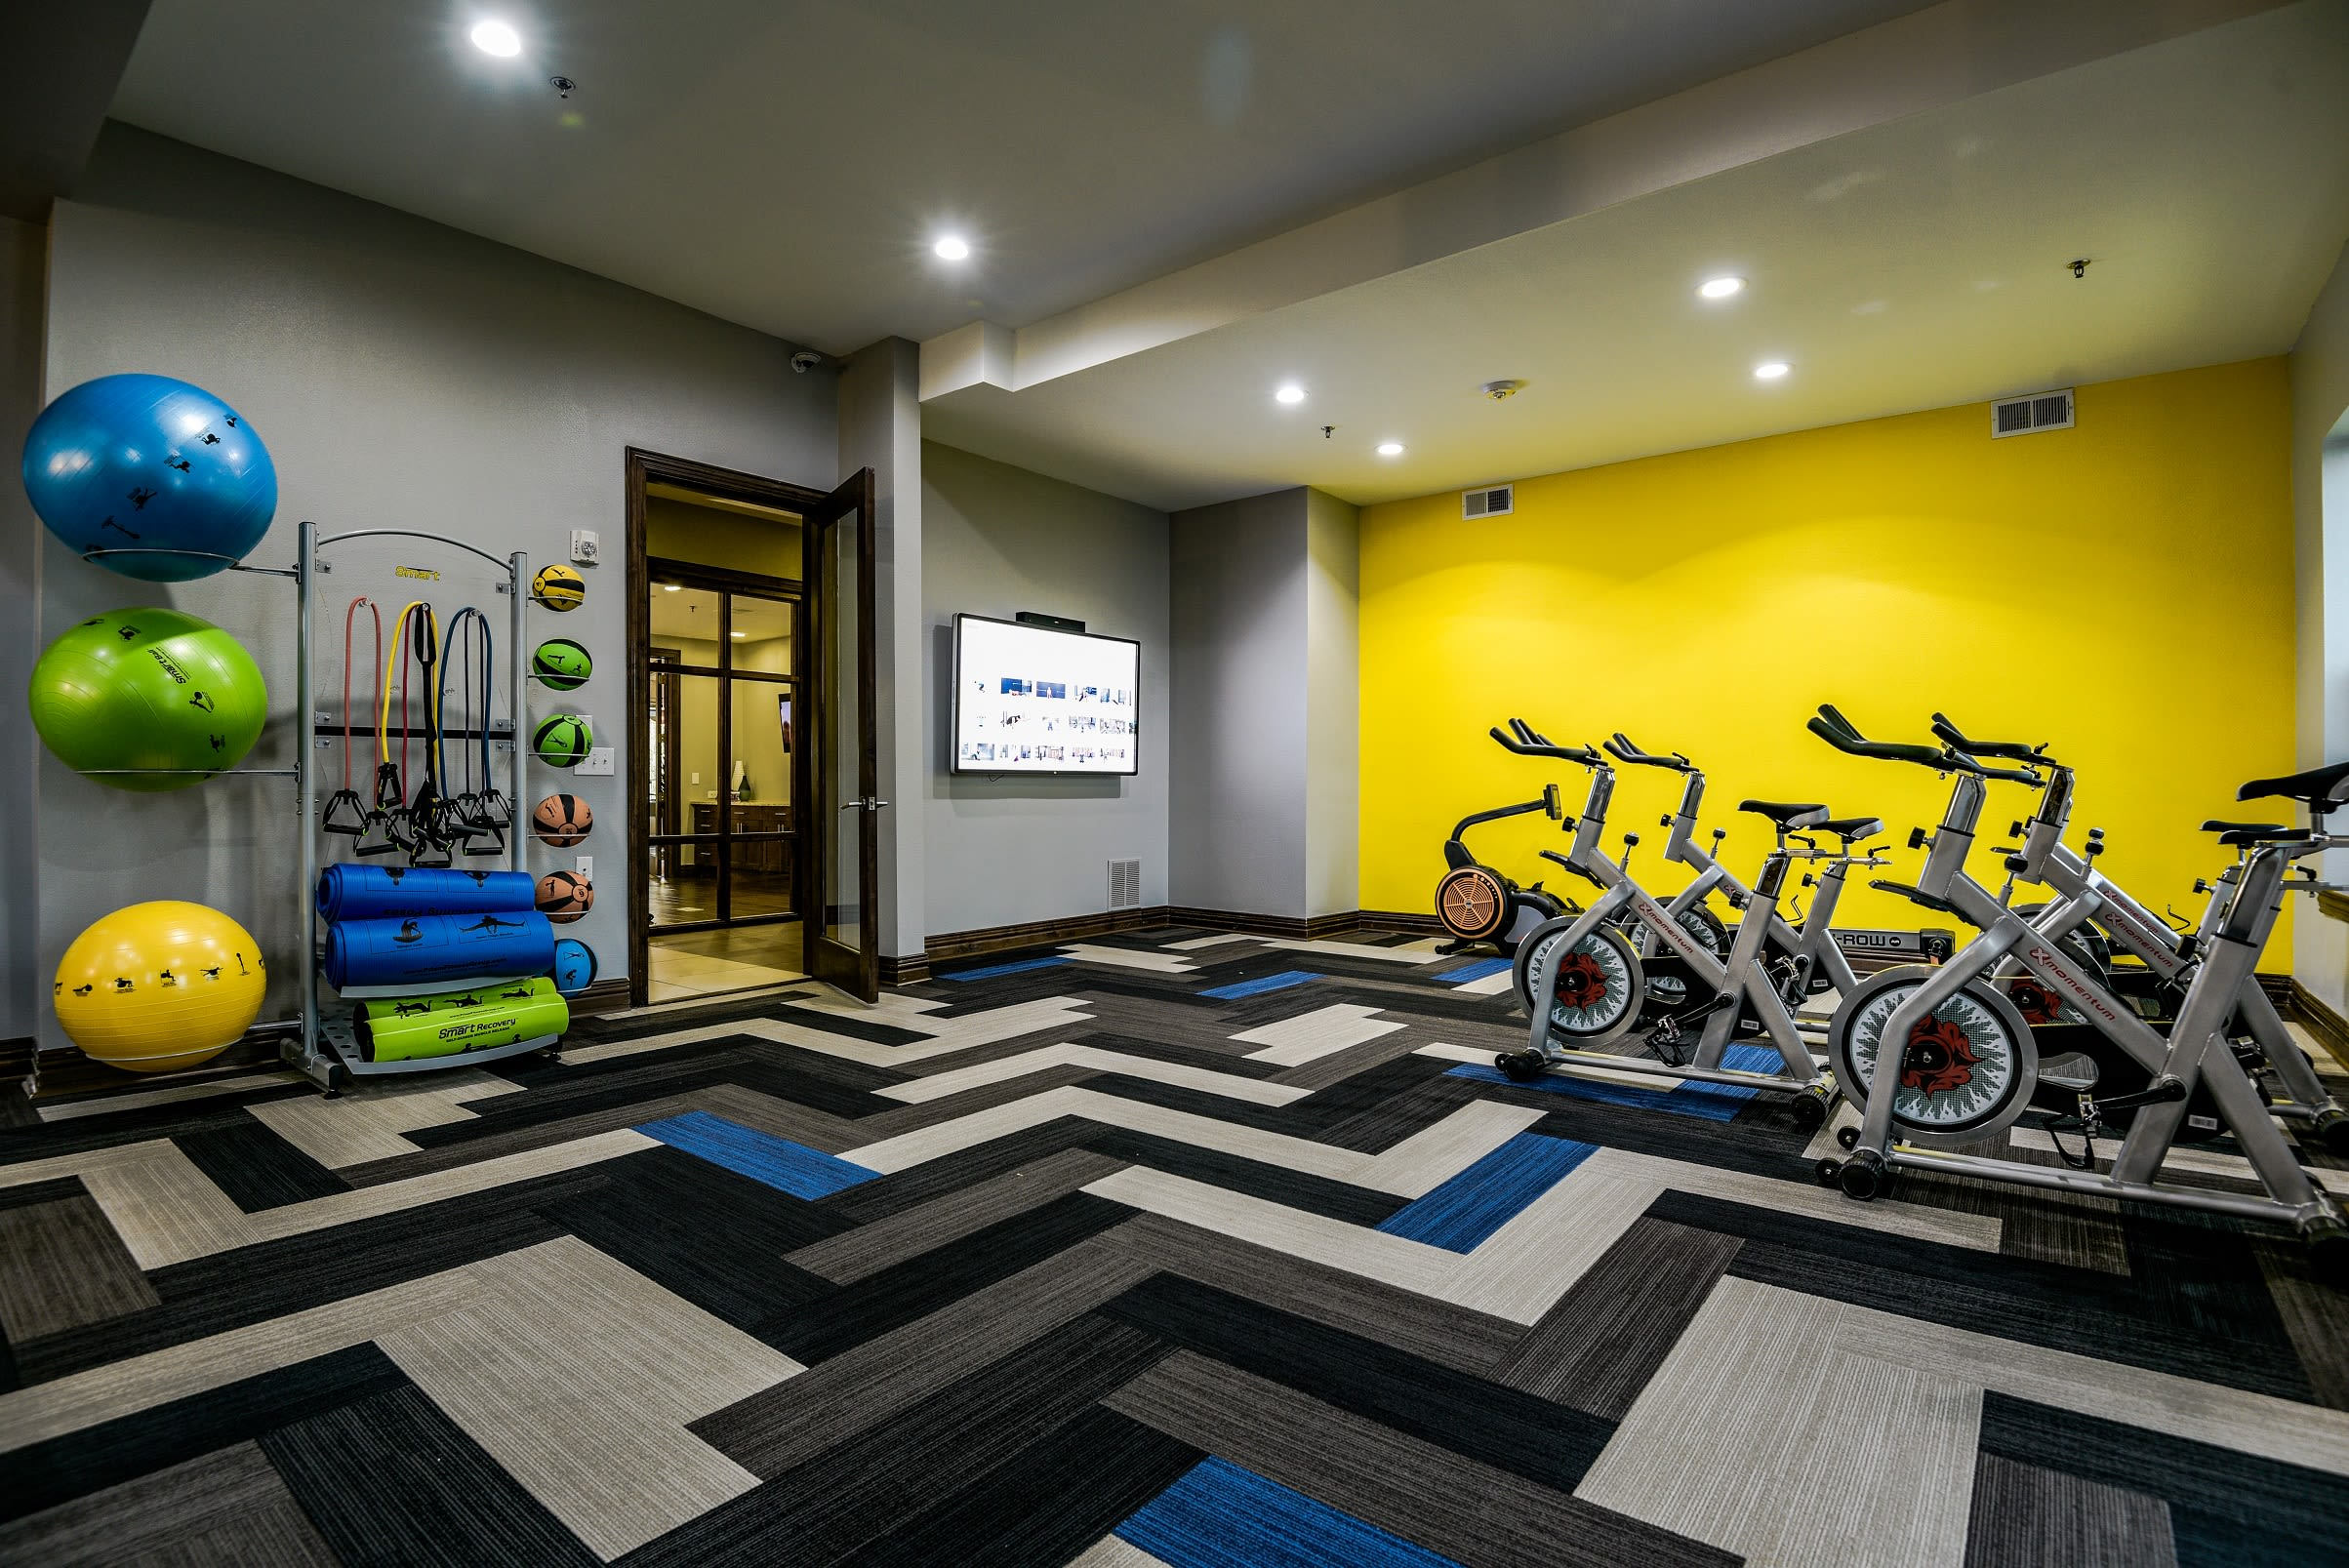 Community fitness gym with individual workout stations at The Blvd in Irving, Texas